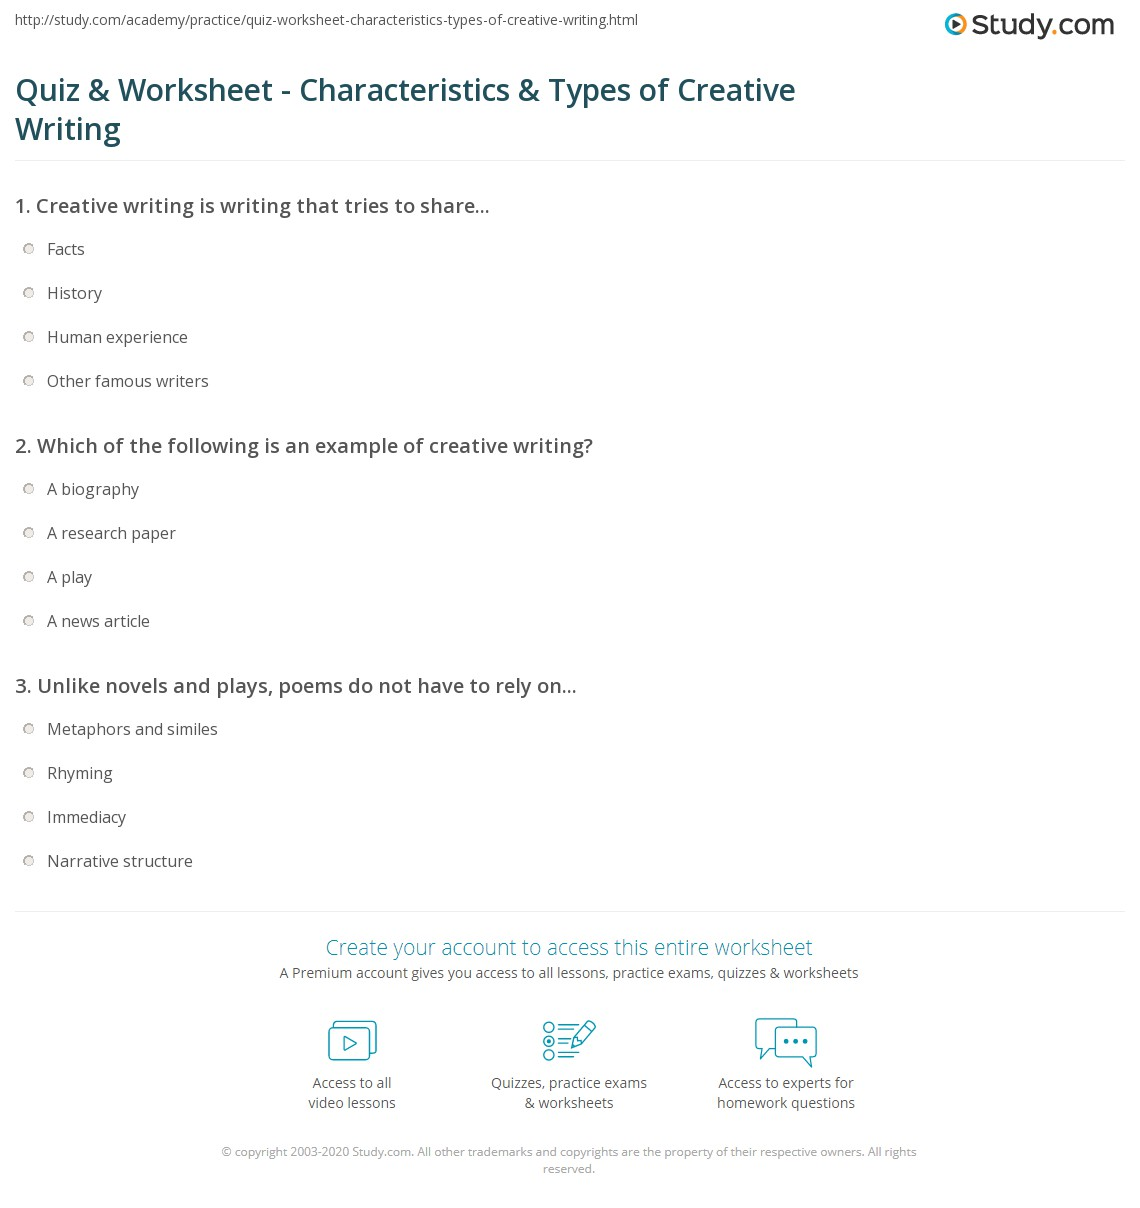 Quiz Worksheet Characteristics Types Of Creative Writing